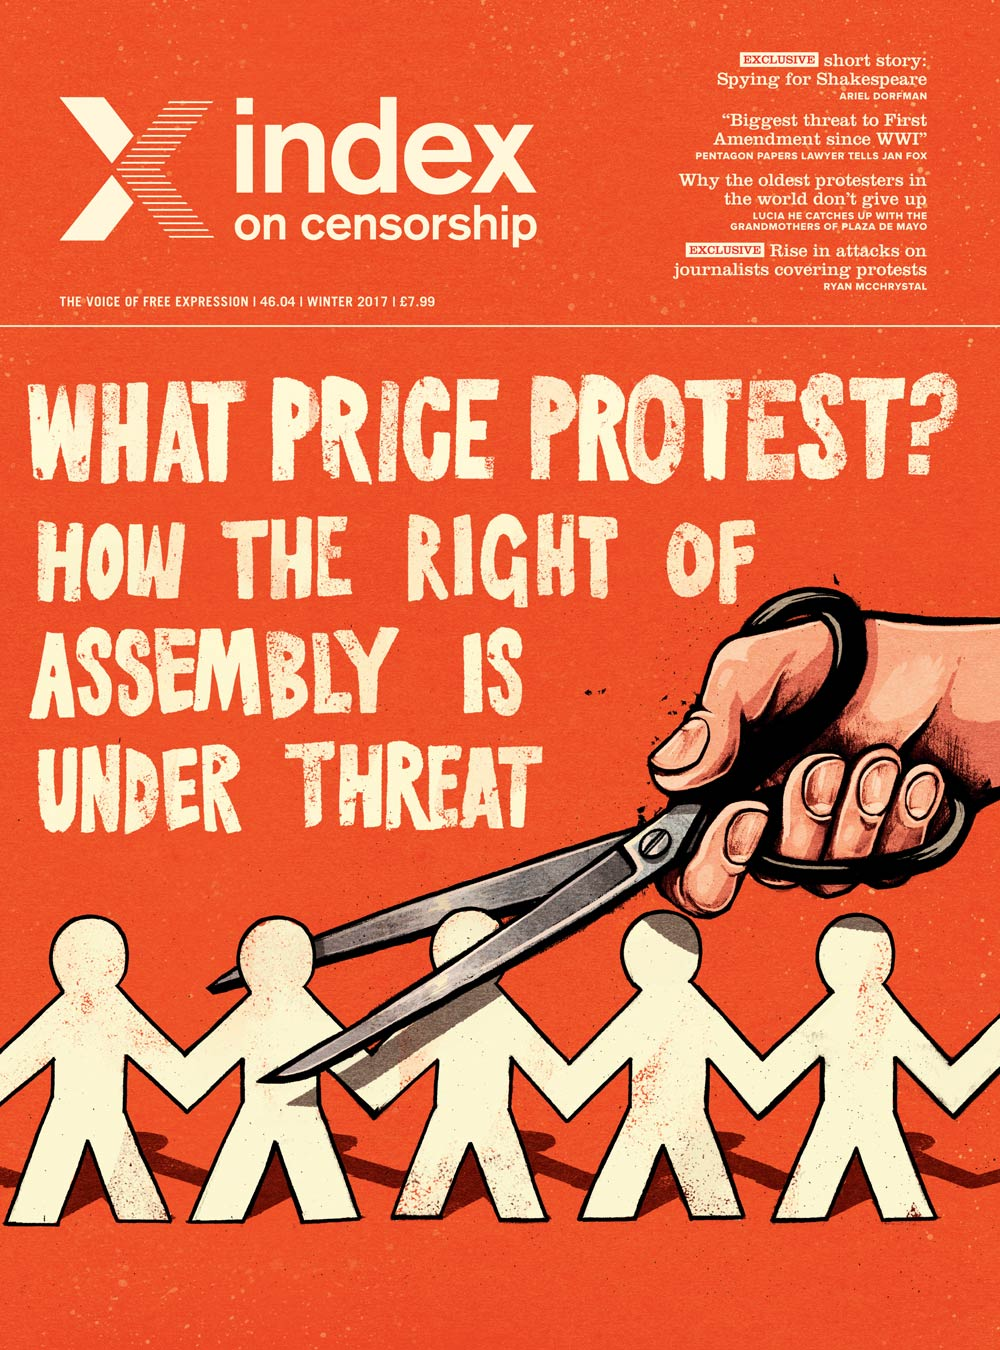 What Price Protest?